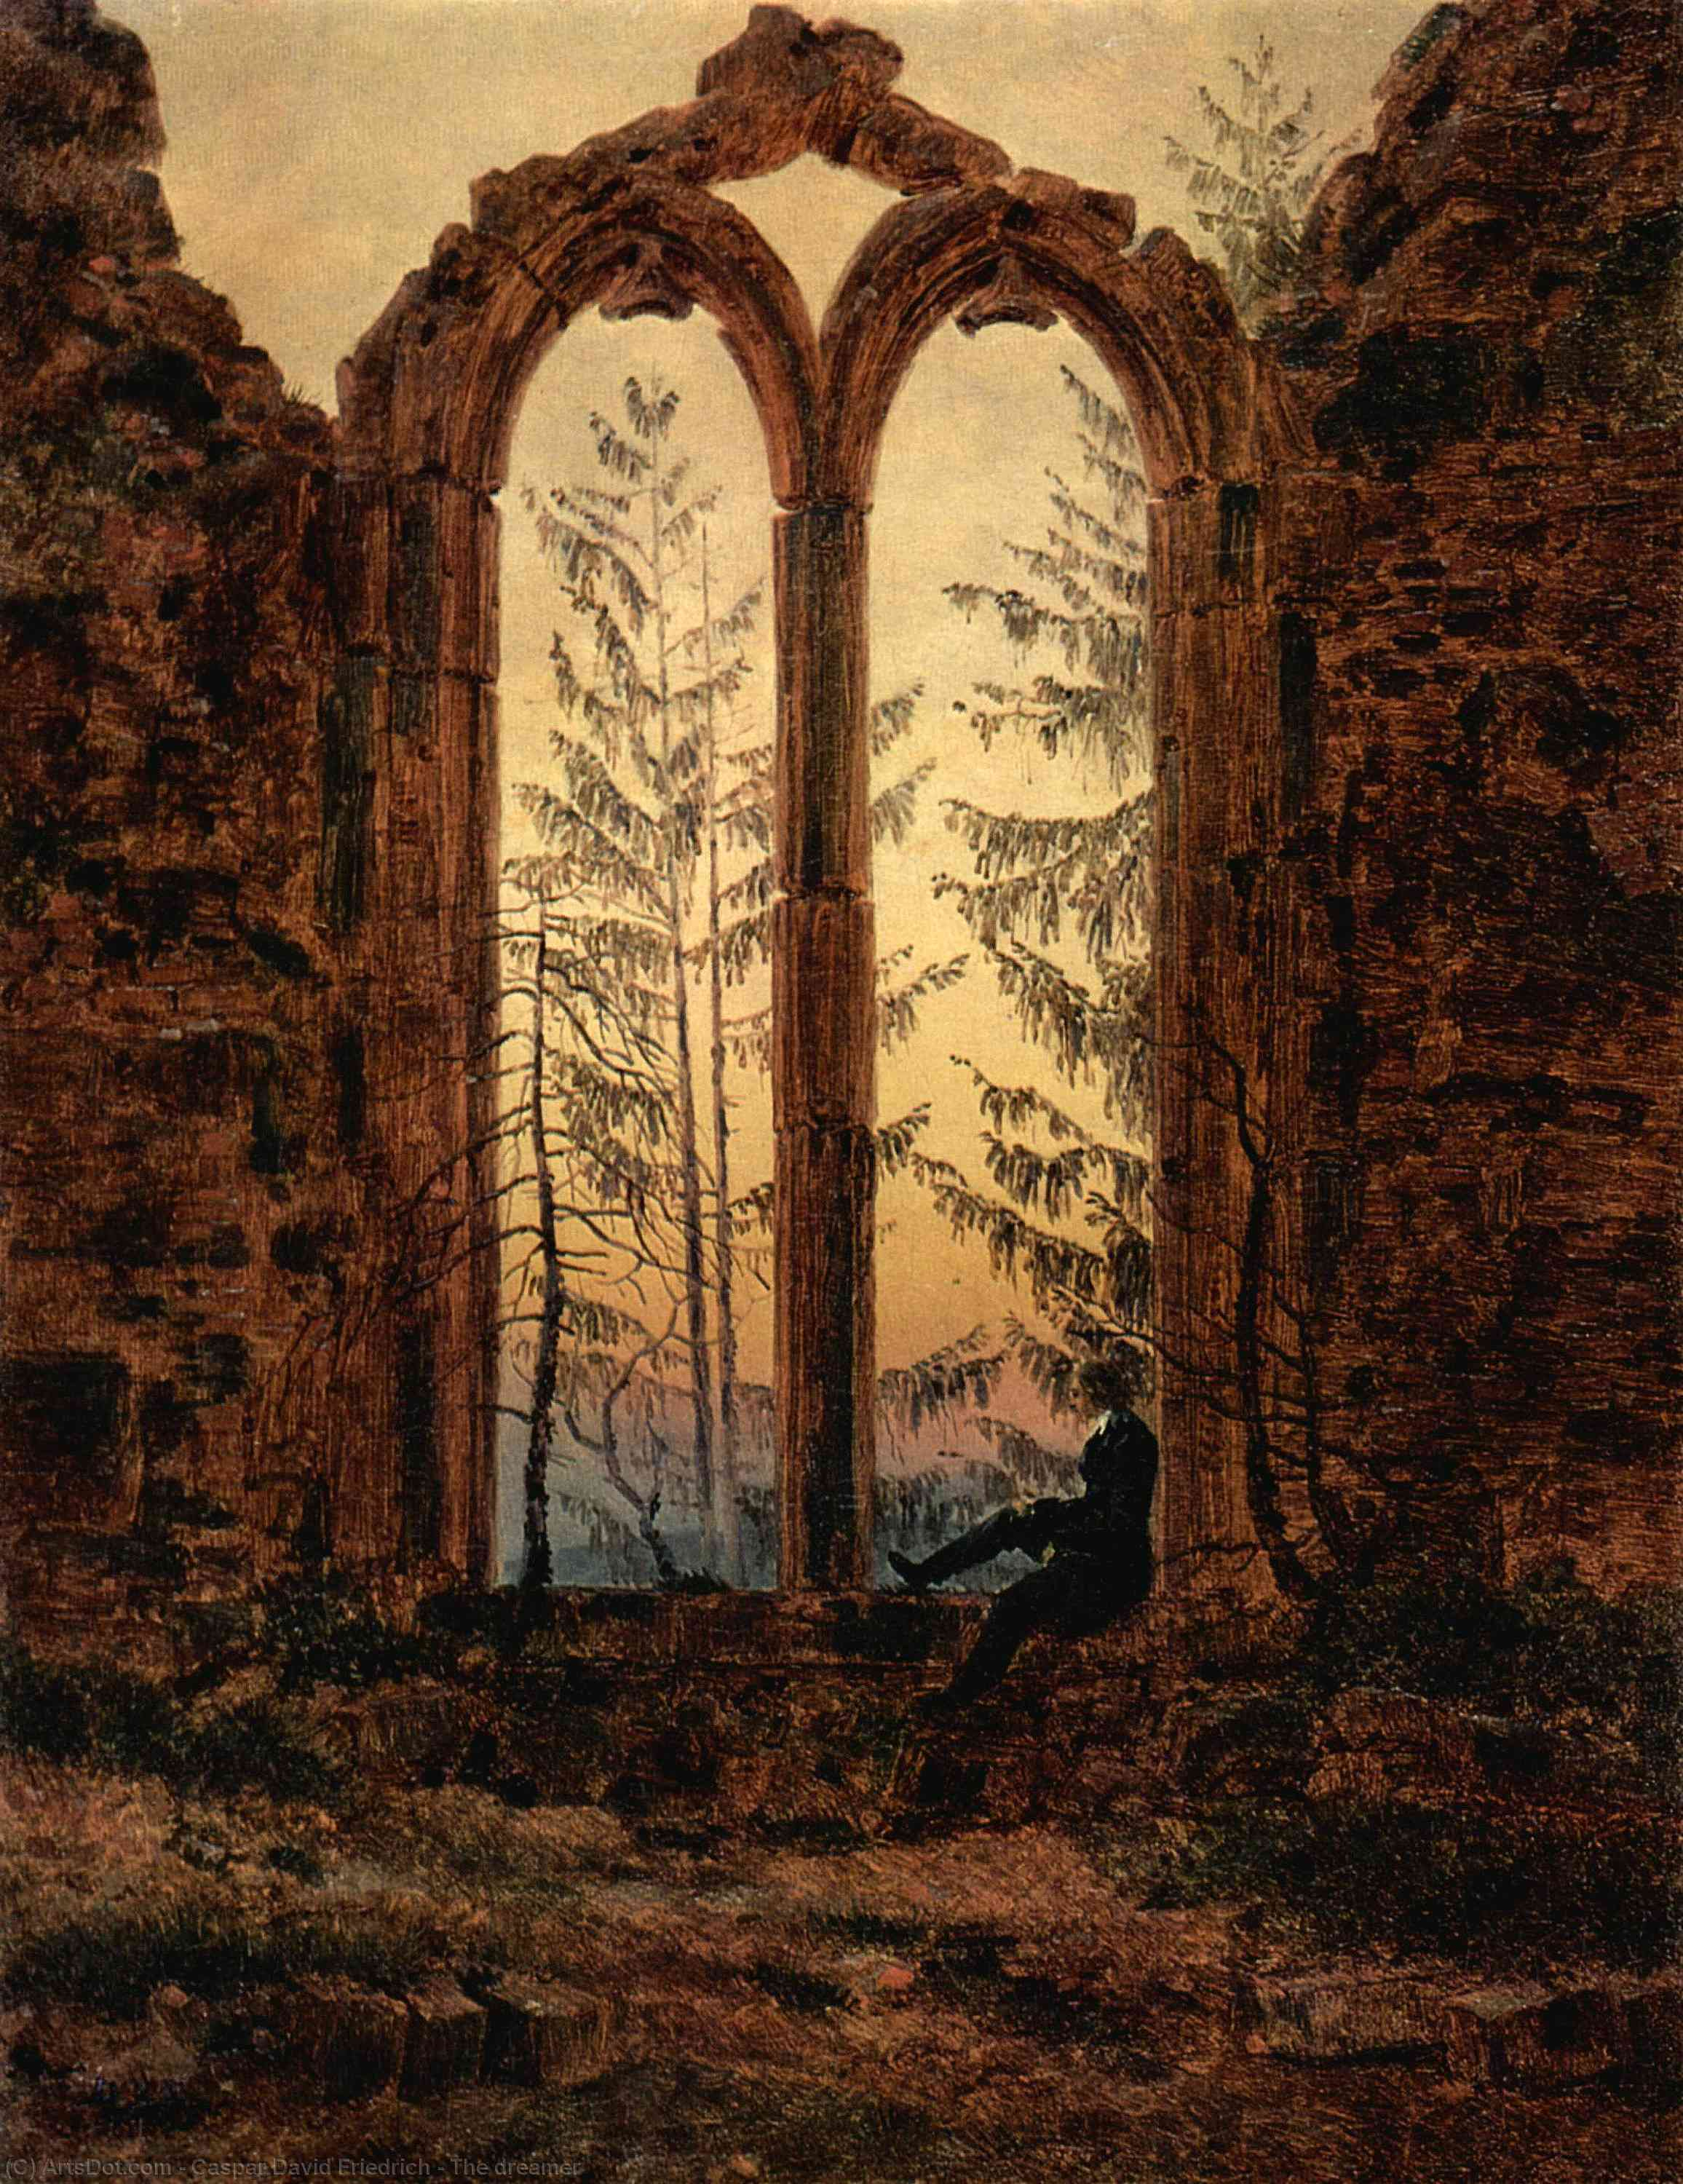 Wikioo.org - The Encyclopedia of Fine Arts - Painting, Artwork by Caspar David Friedrich - The dreamer